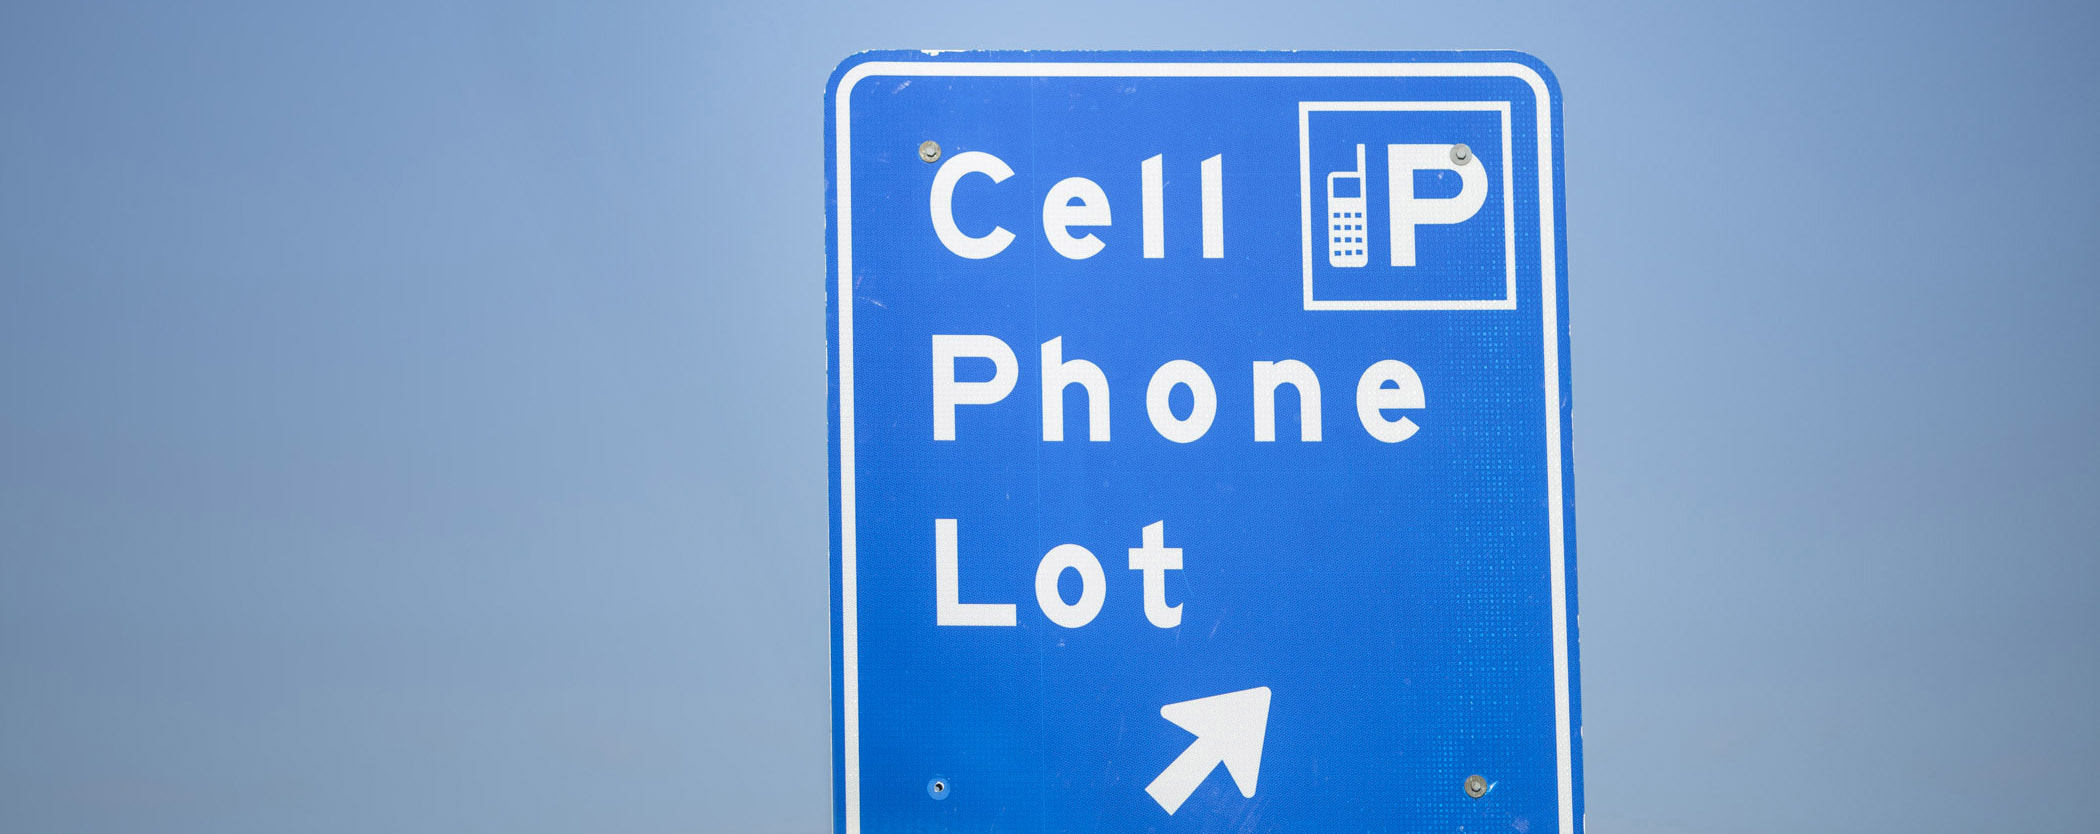 Cell Phone Lot